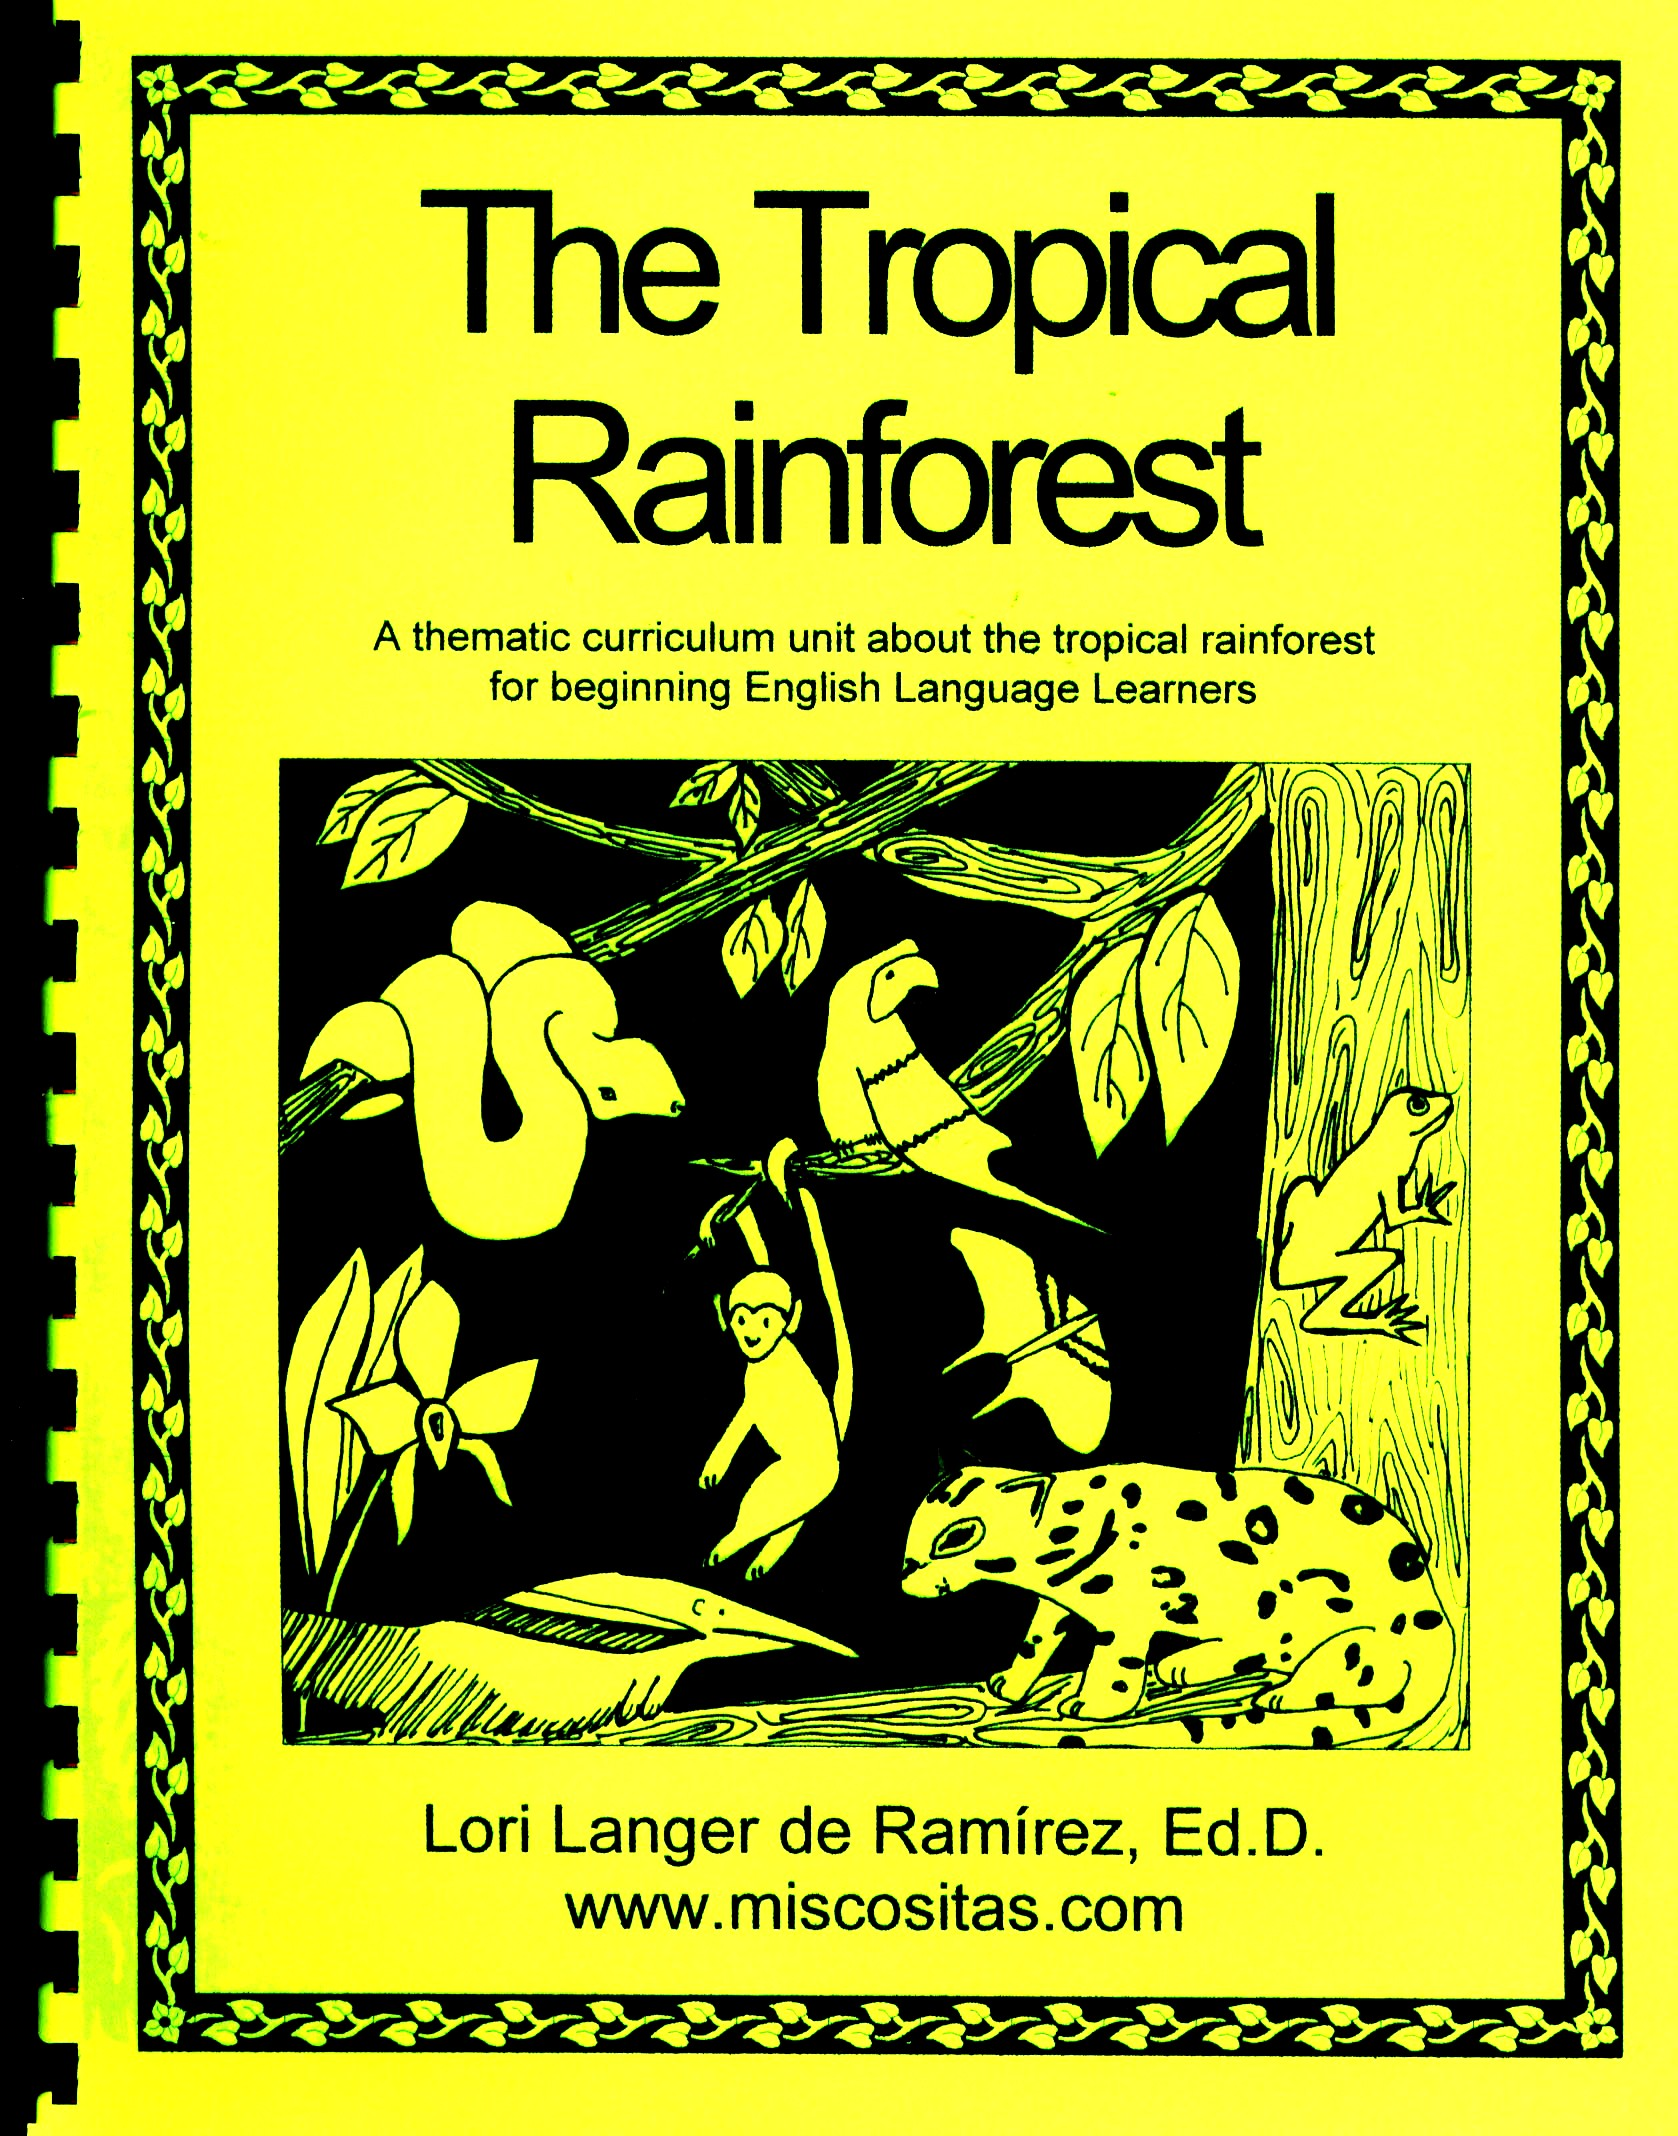 worksheet Tropical Rainforest Worksheet miscositas com thematic curriculum units for language teachers in english download these from our google drive